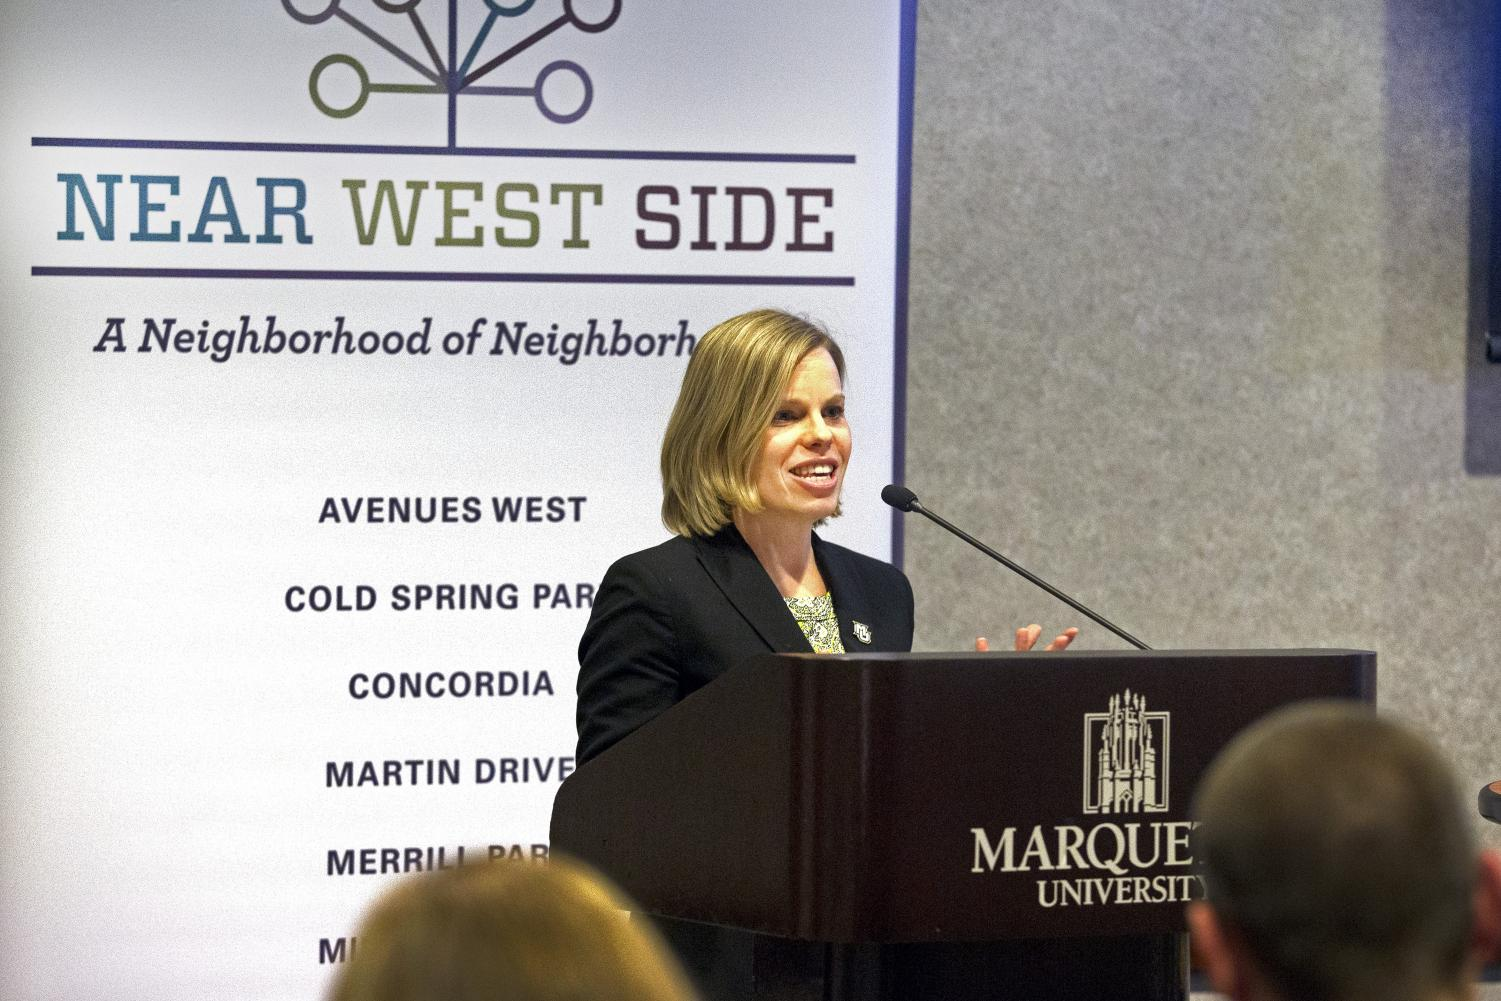 Amber Wichowsky, assistant professor of political science, discusses the Near West Side.